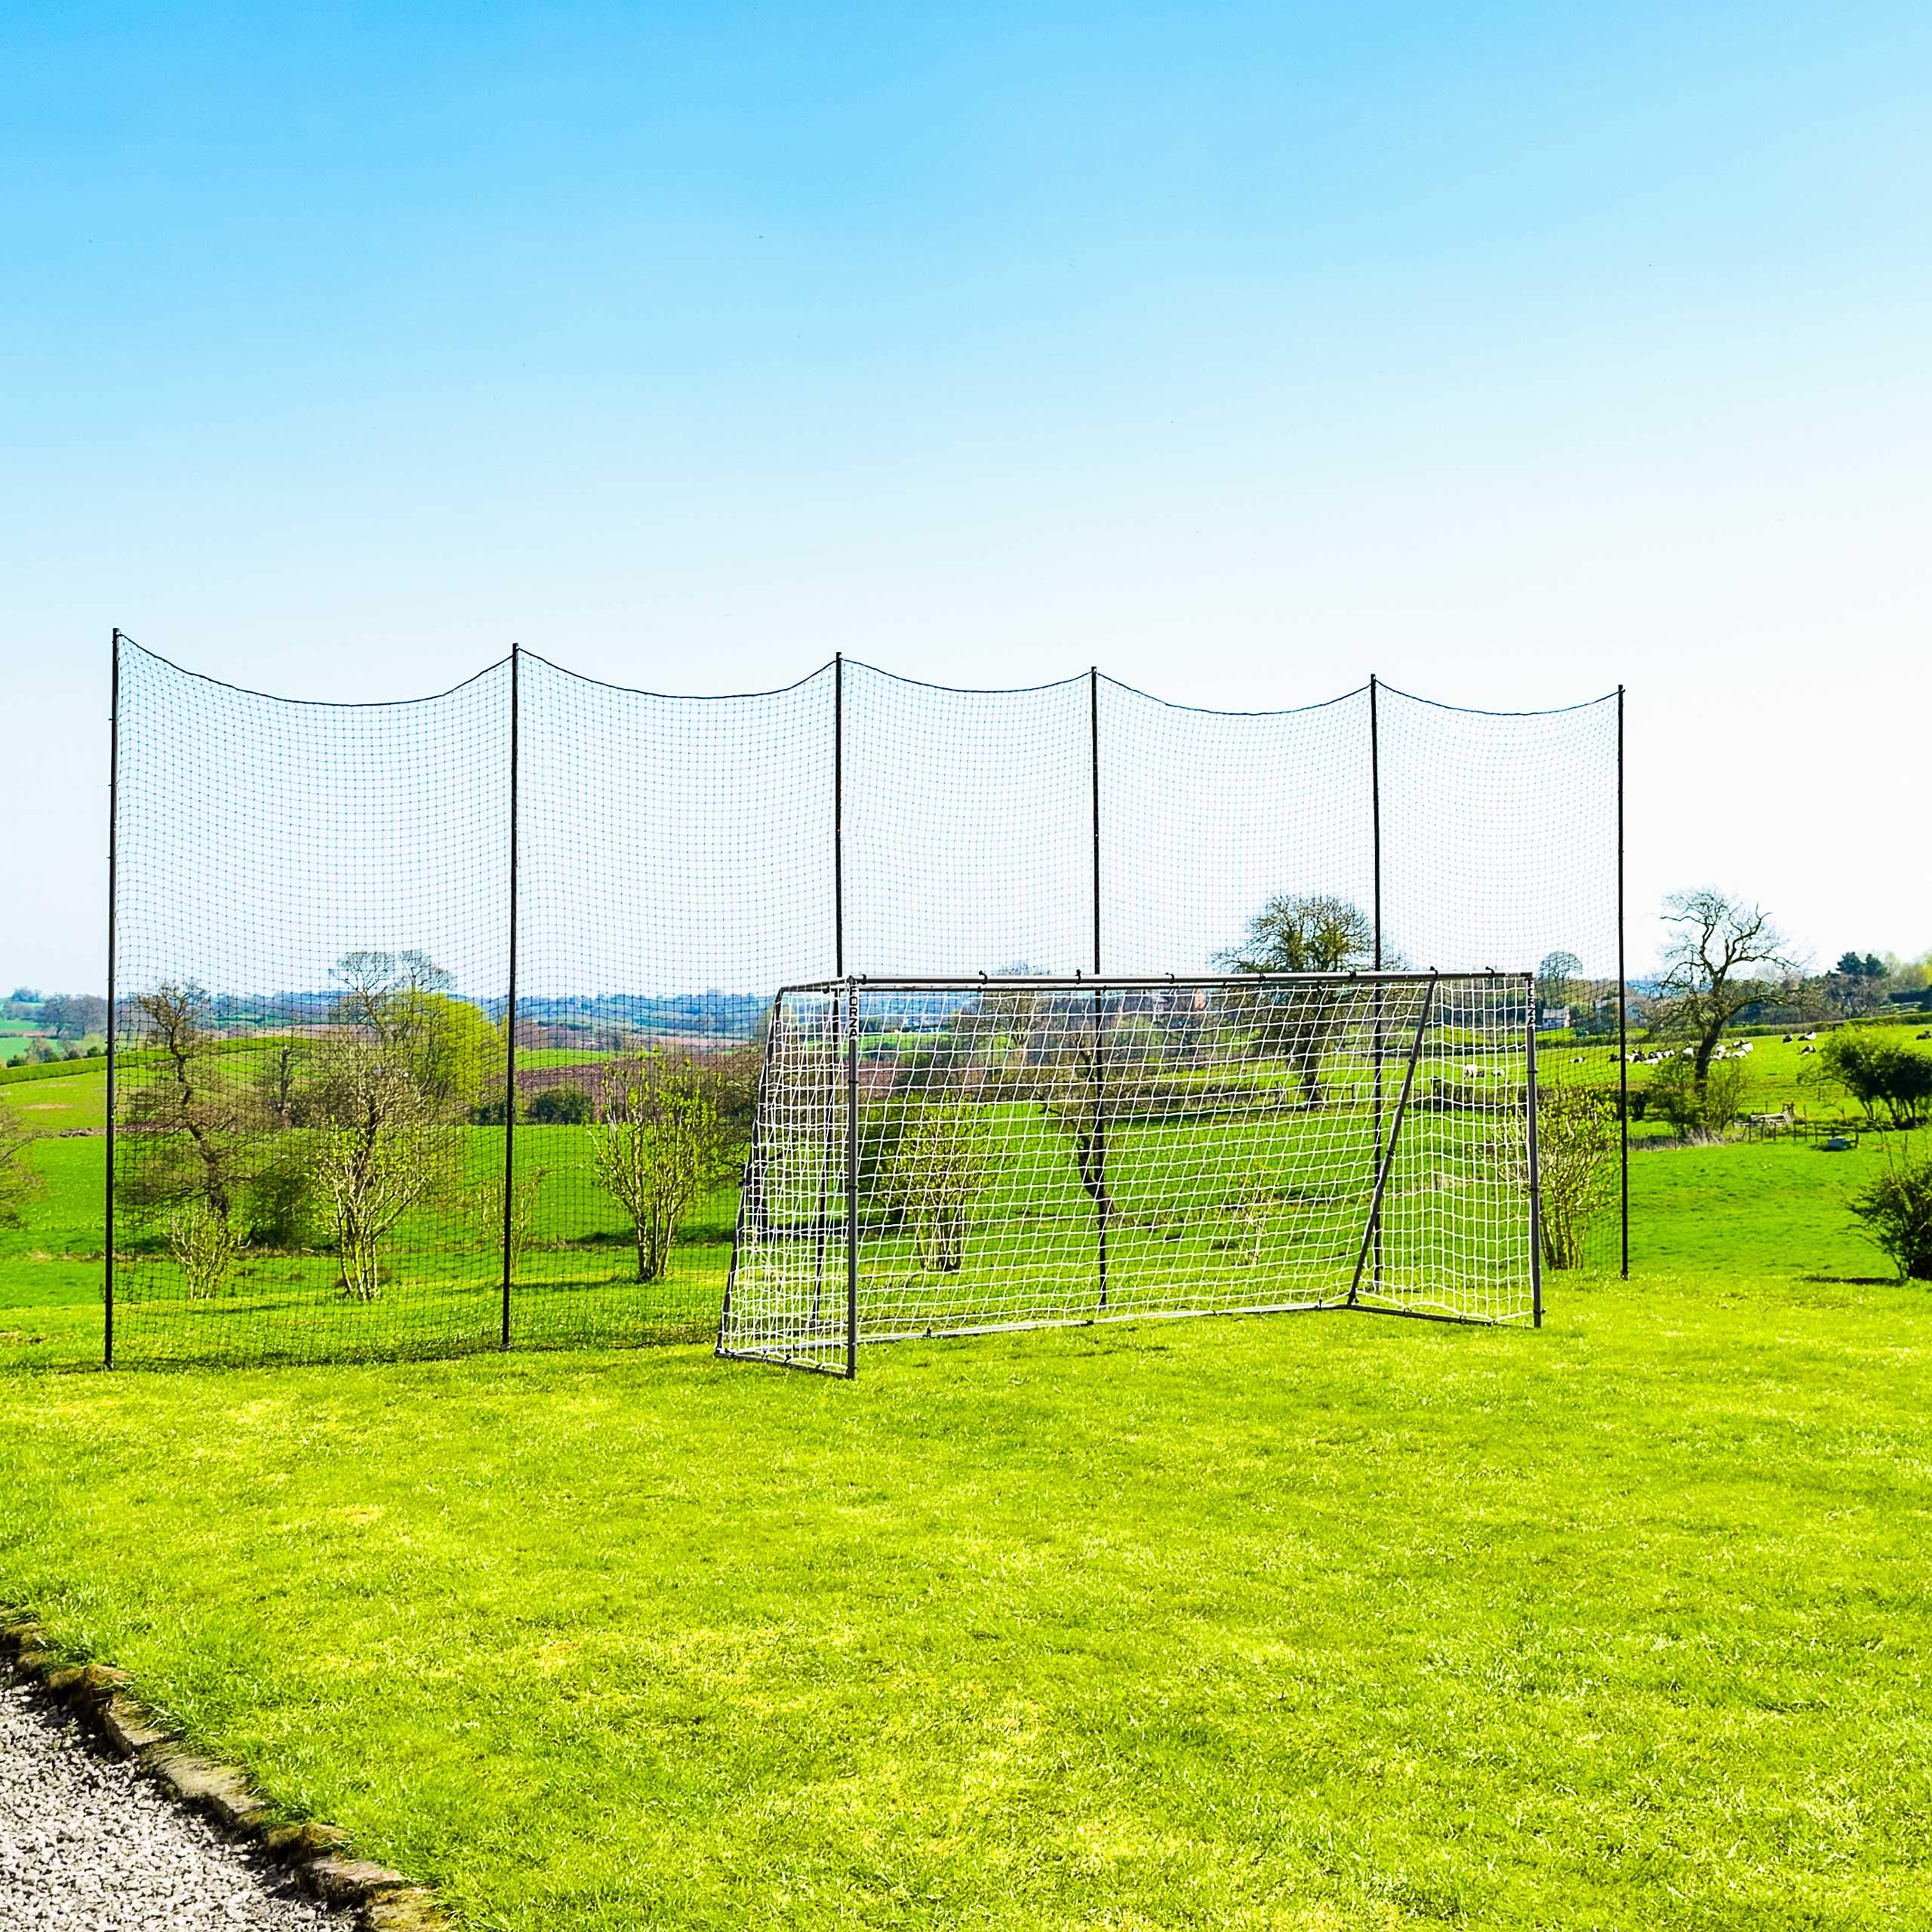 Socketed Stop That Ball - Multi-Sport Ball Stop Netting System for The Backyard, School or Sports Clubs (10ft) by Net World Sports